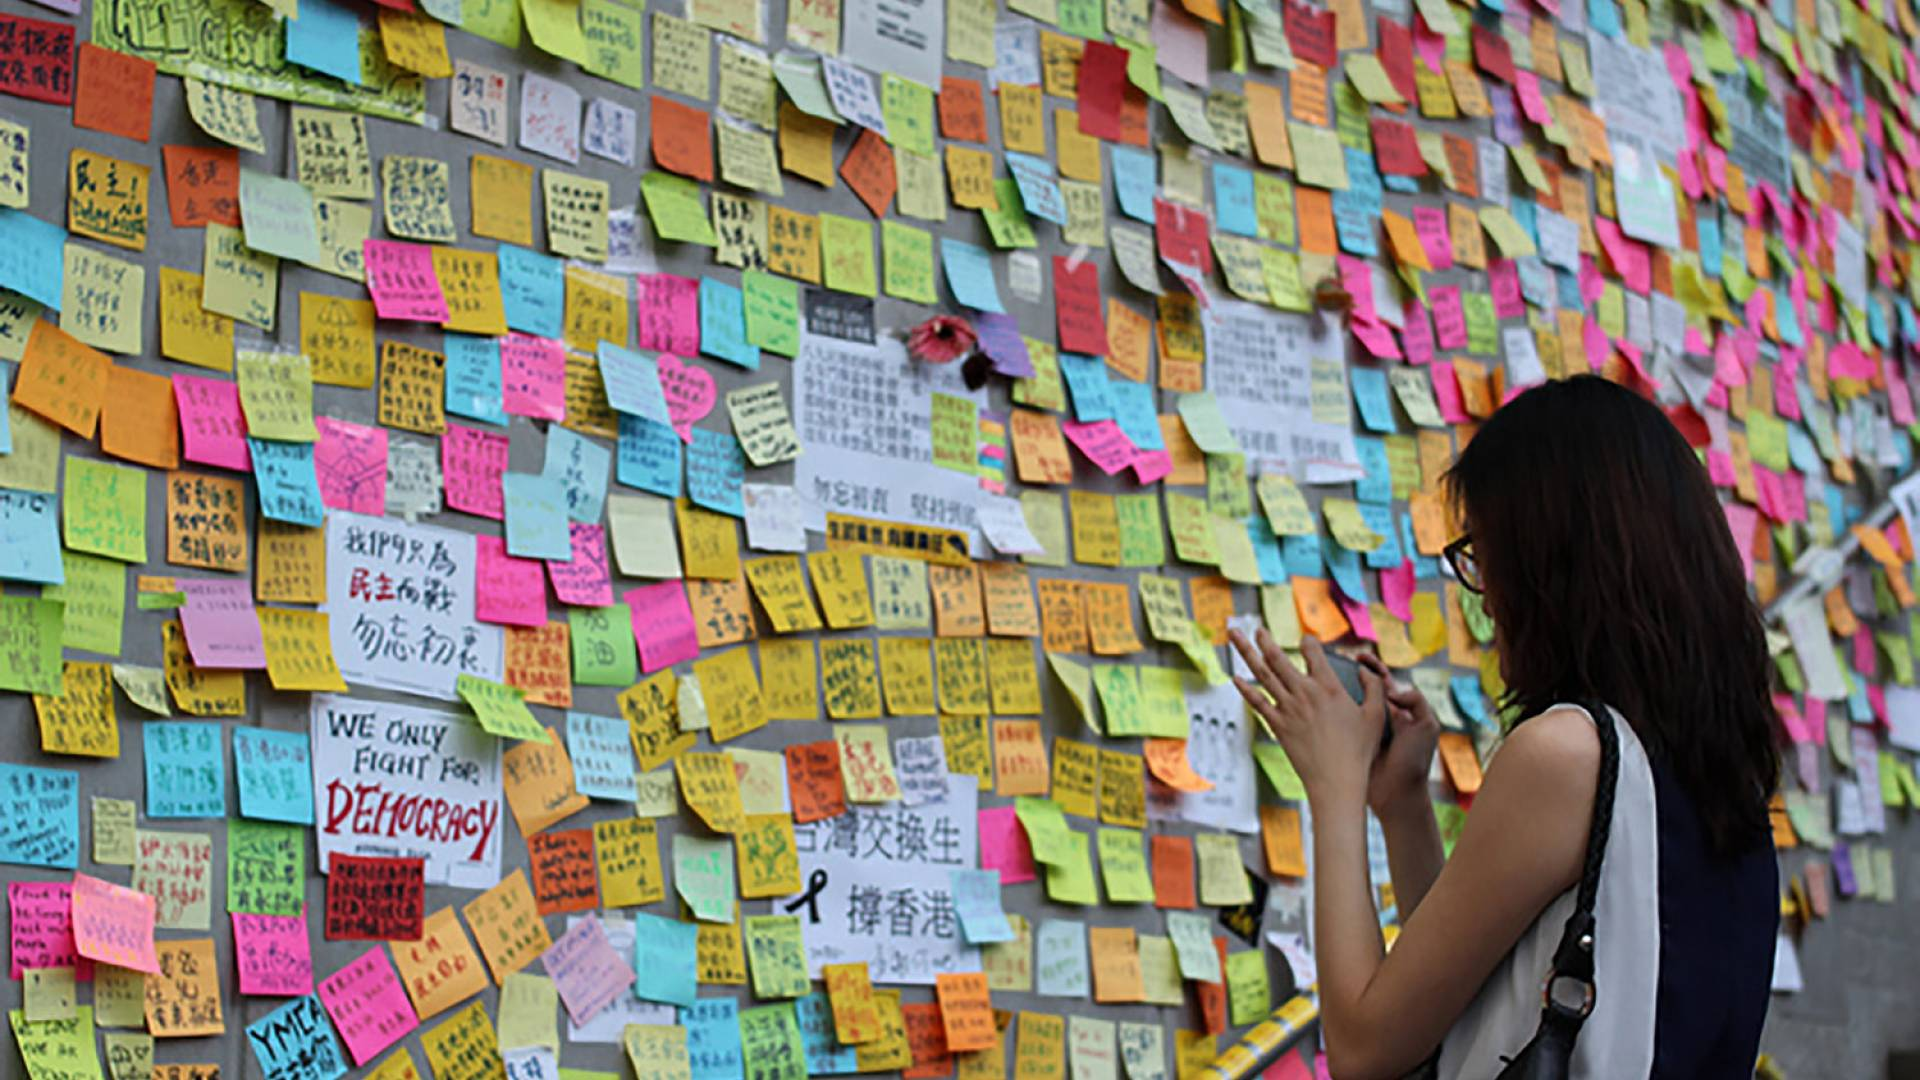 A person in front of a wall of pro democracy post-its